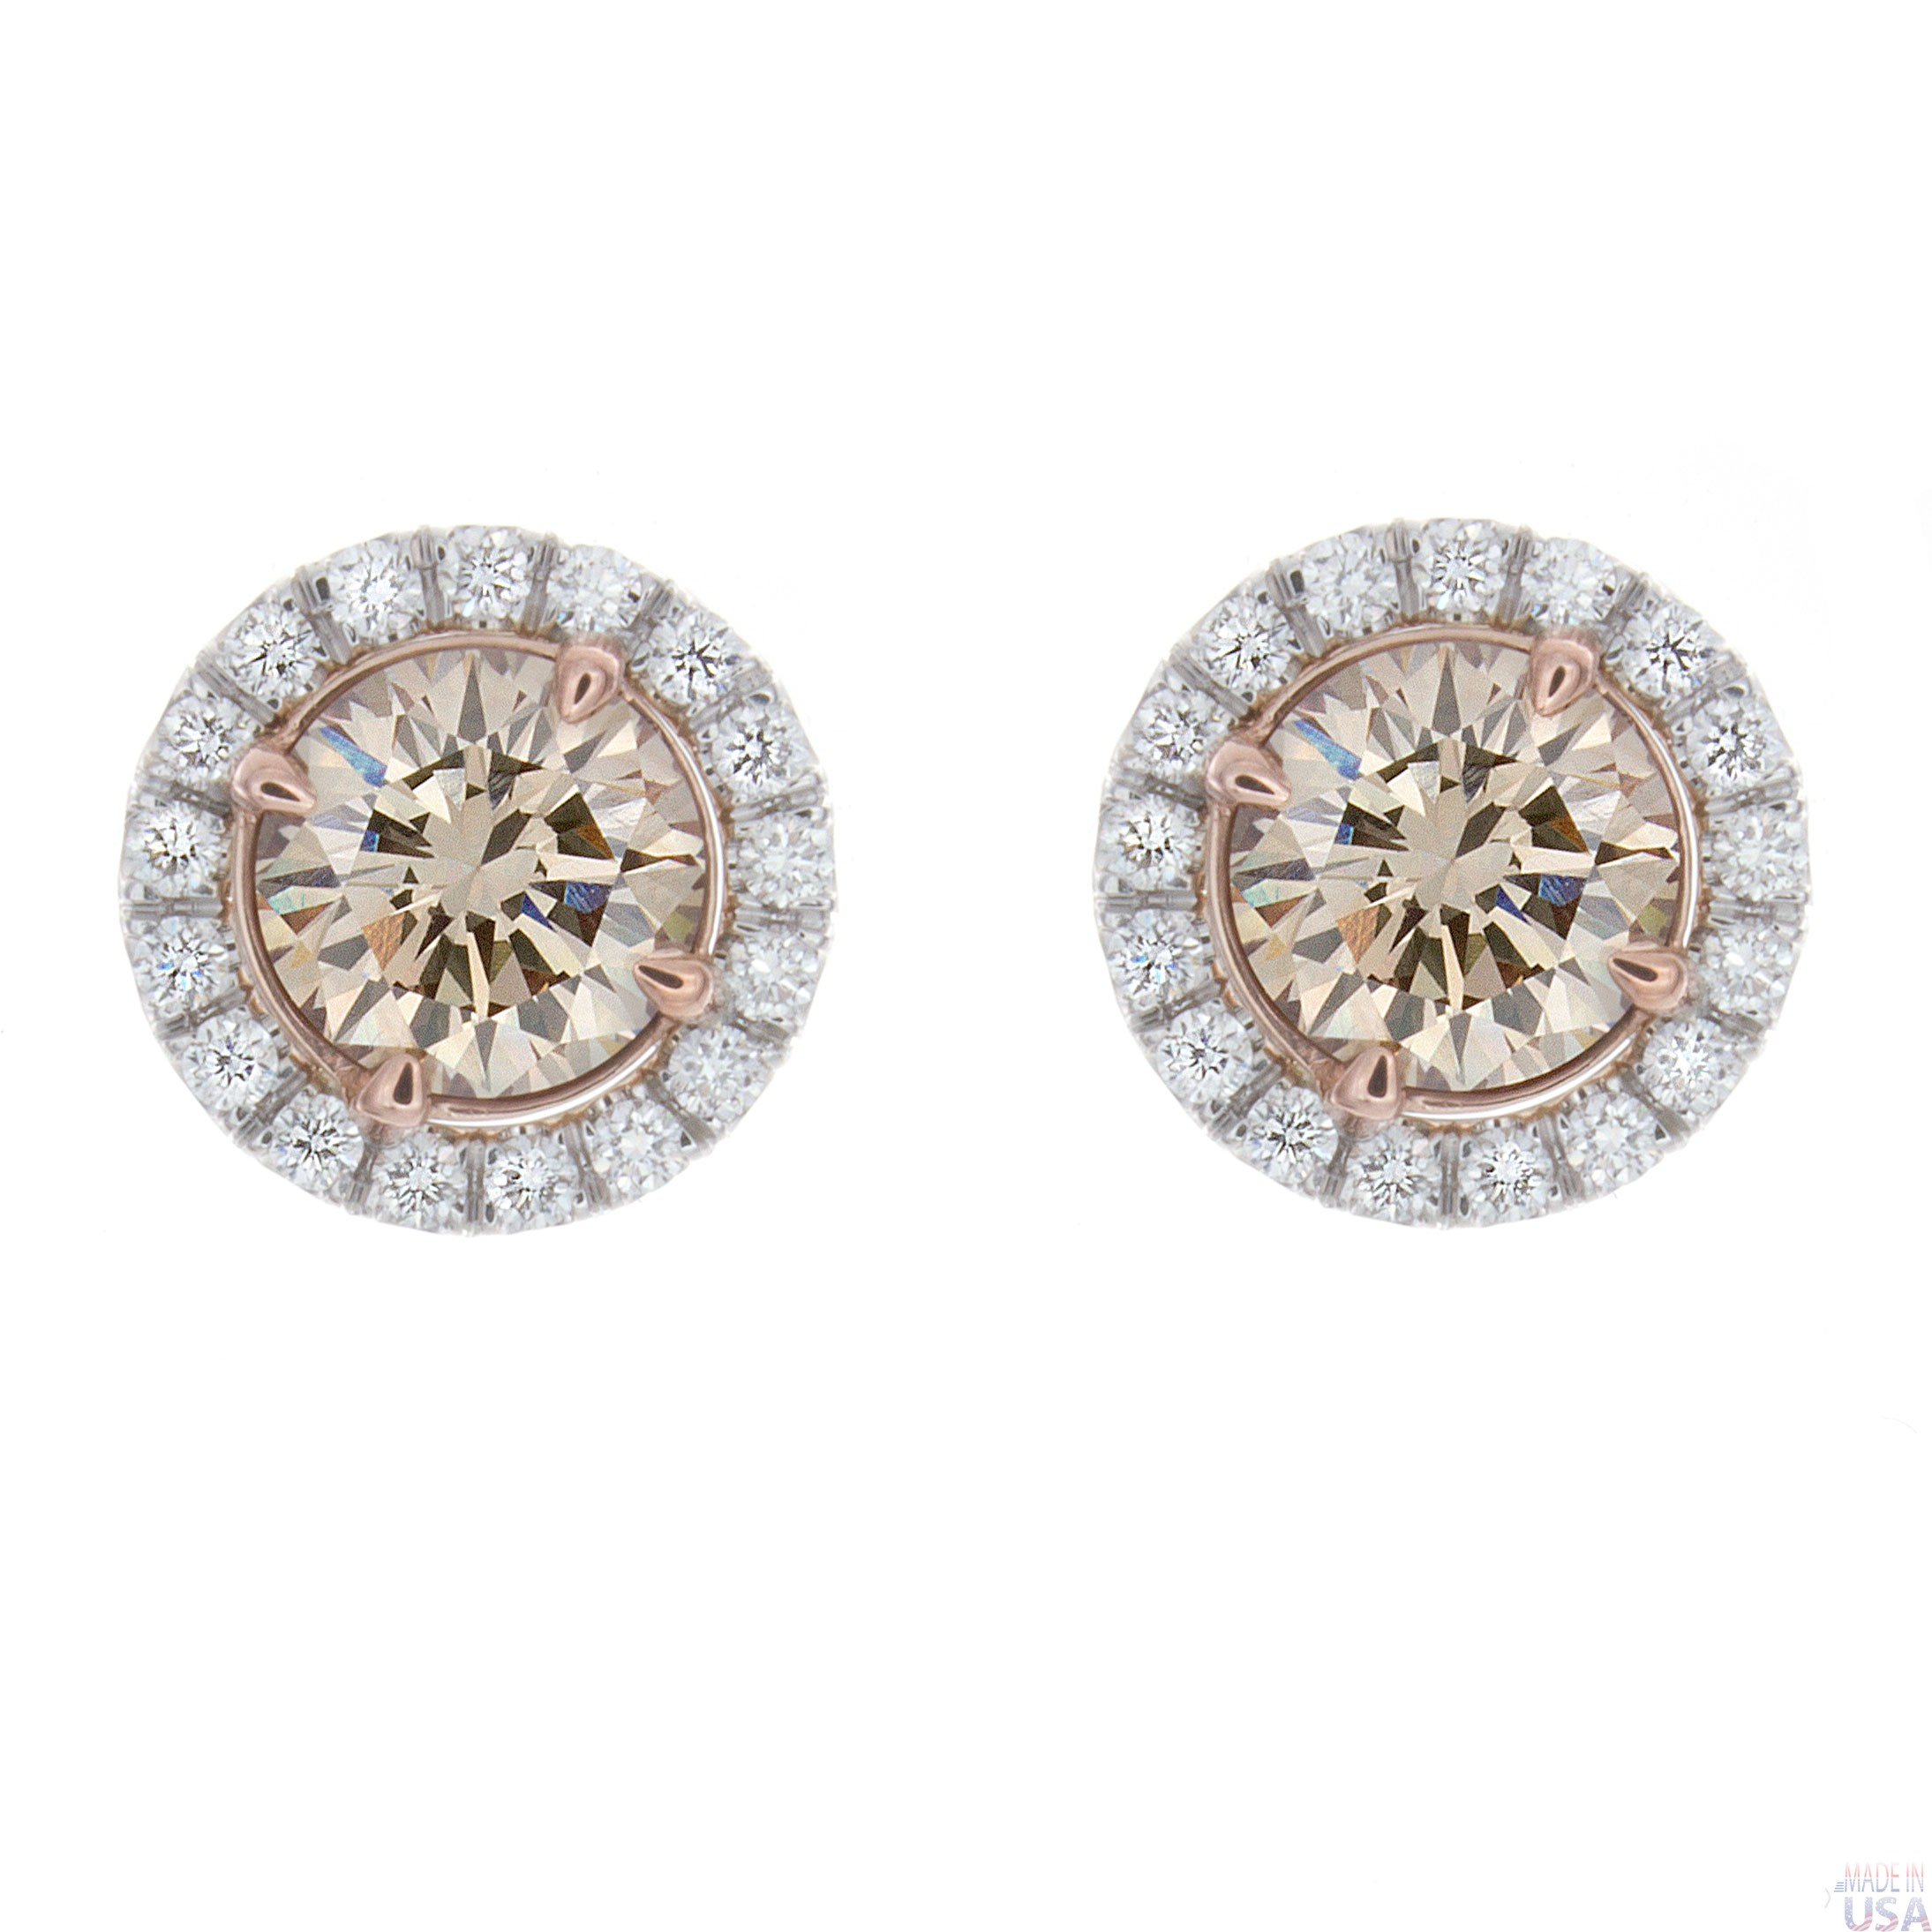 masters a pair off stud earrings diamond of studs colored jewelry